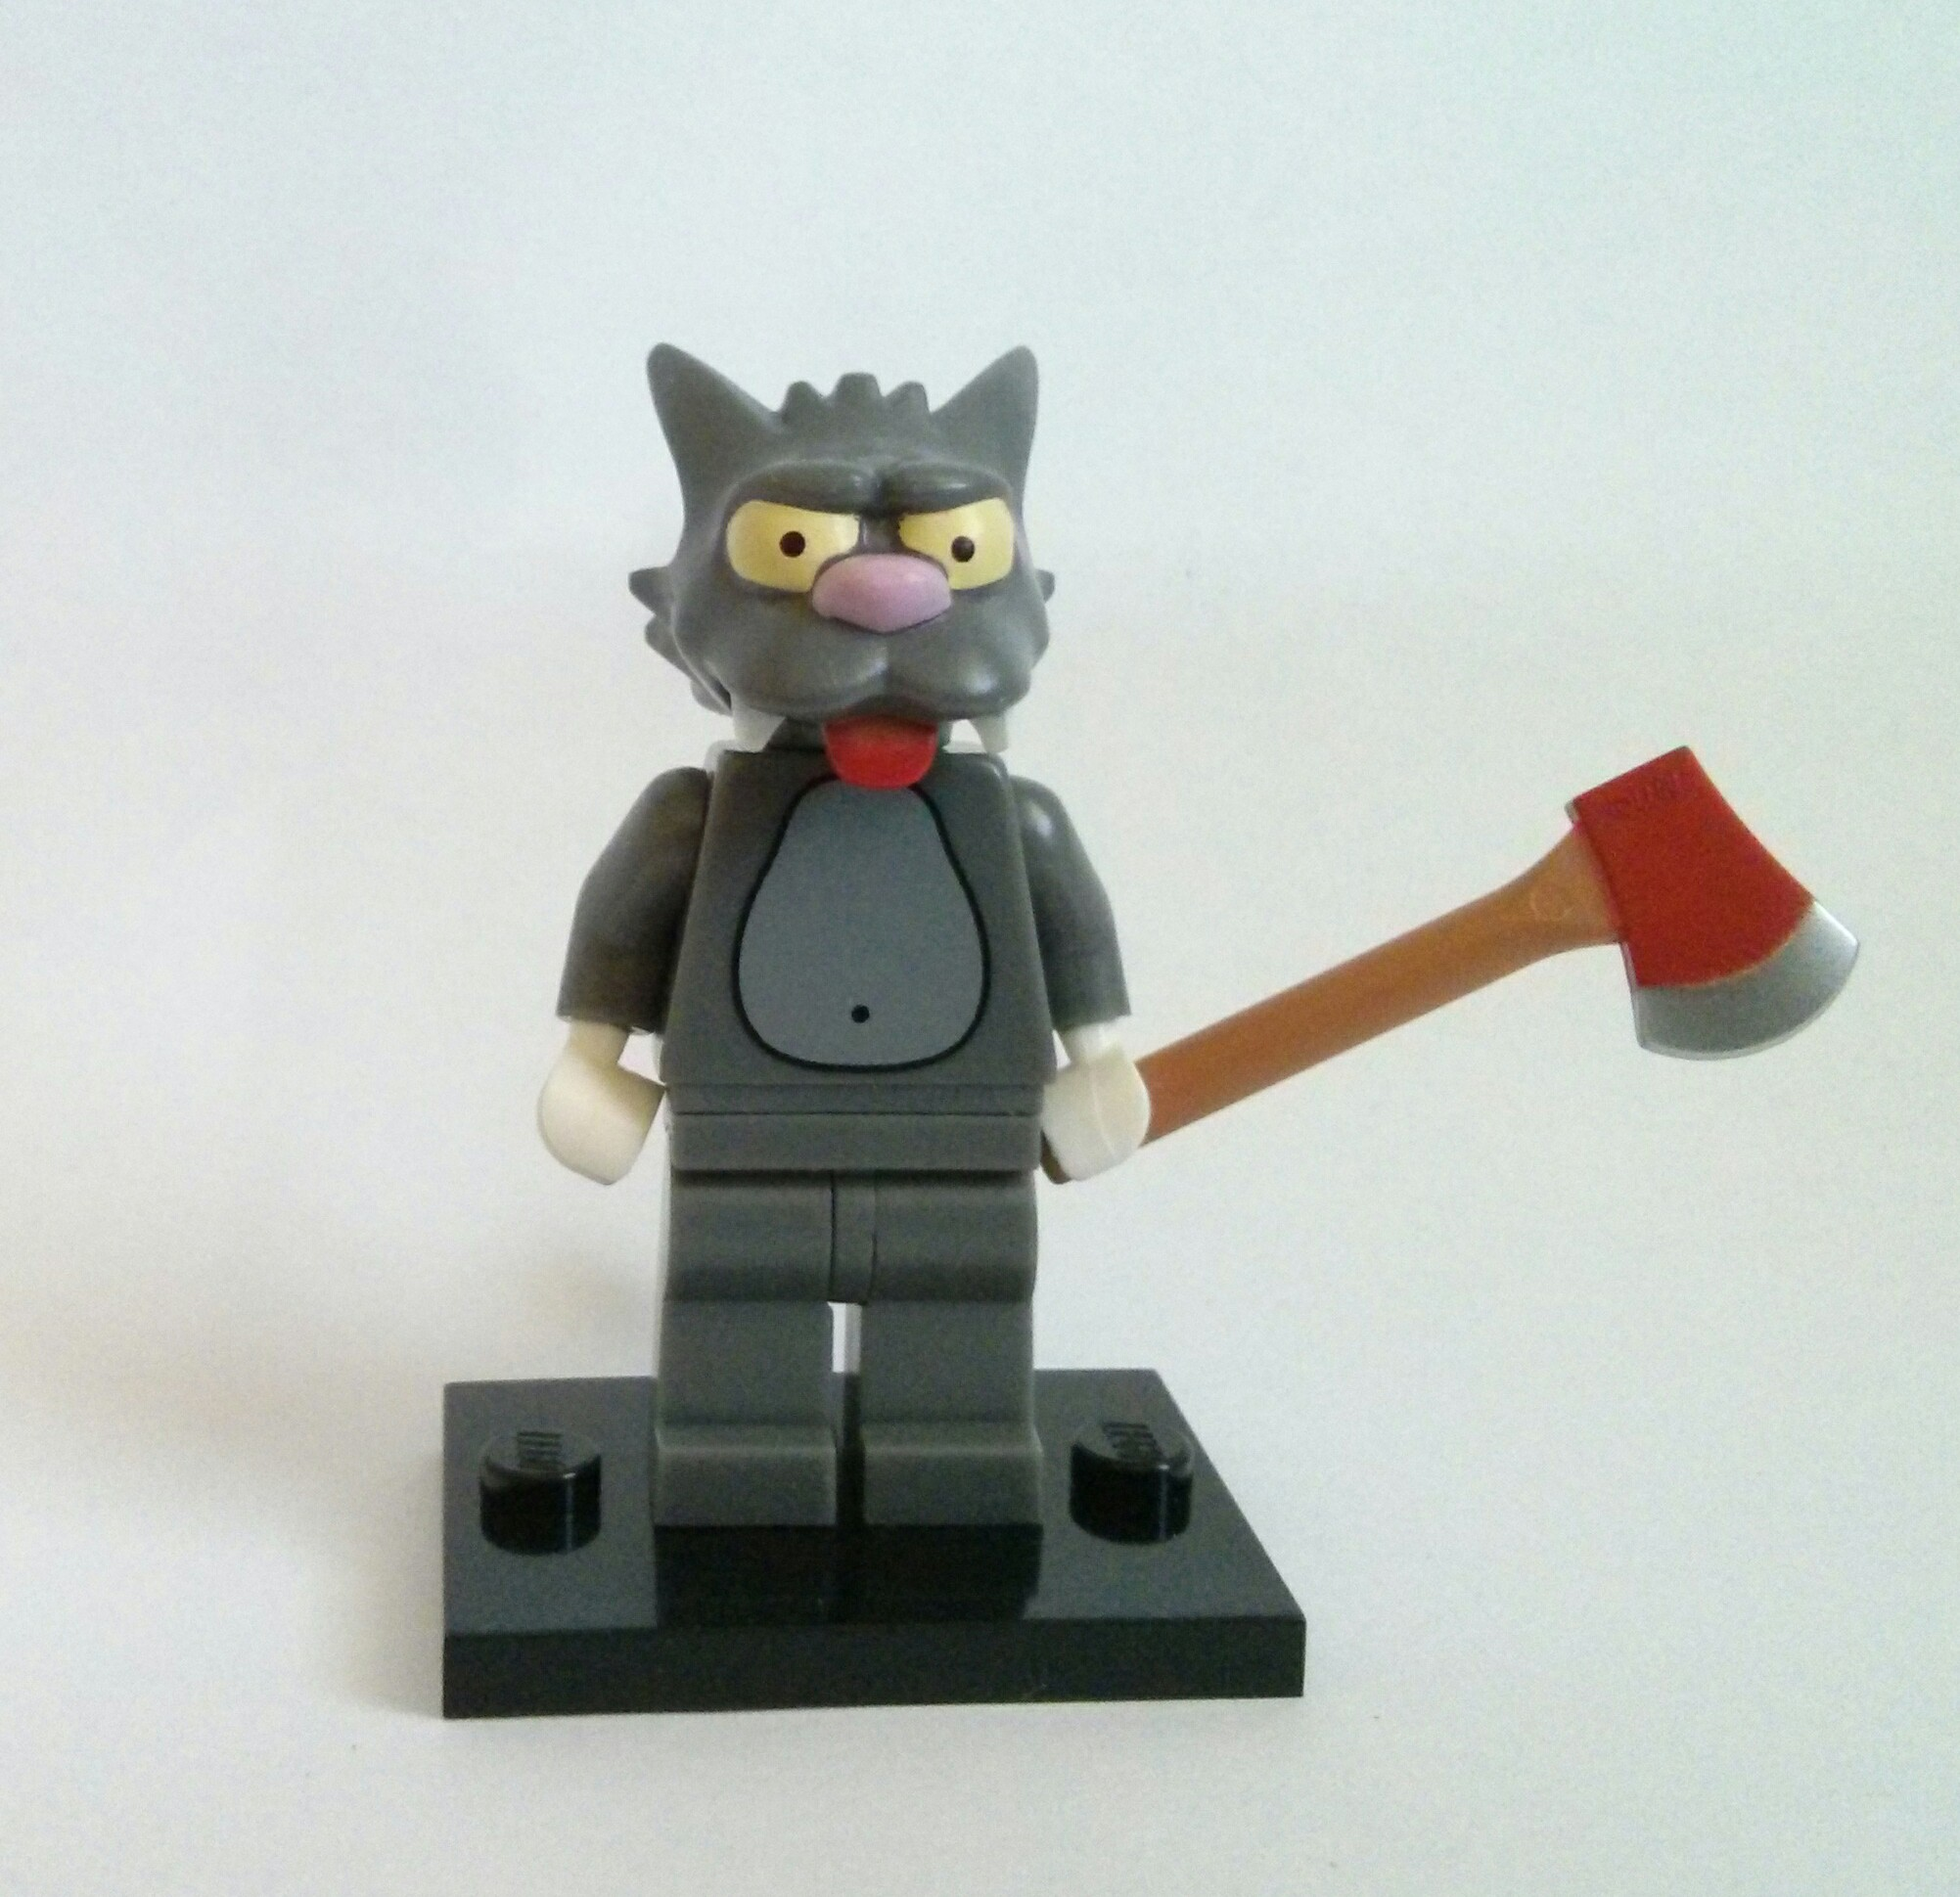 Scratchy Lego Collectible Minifigures - 545.9KB